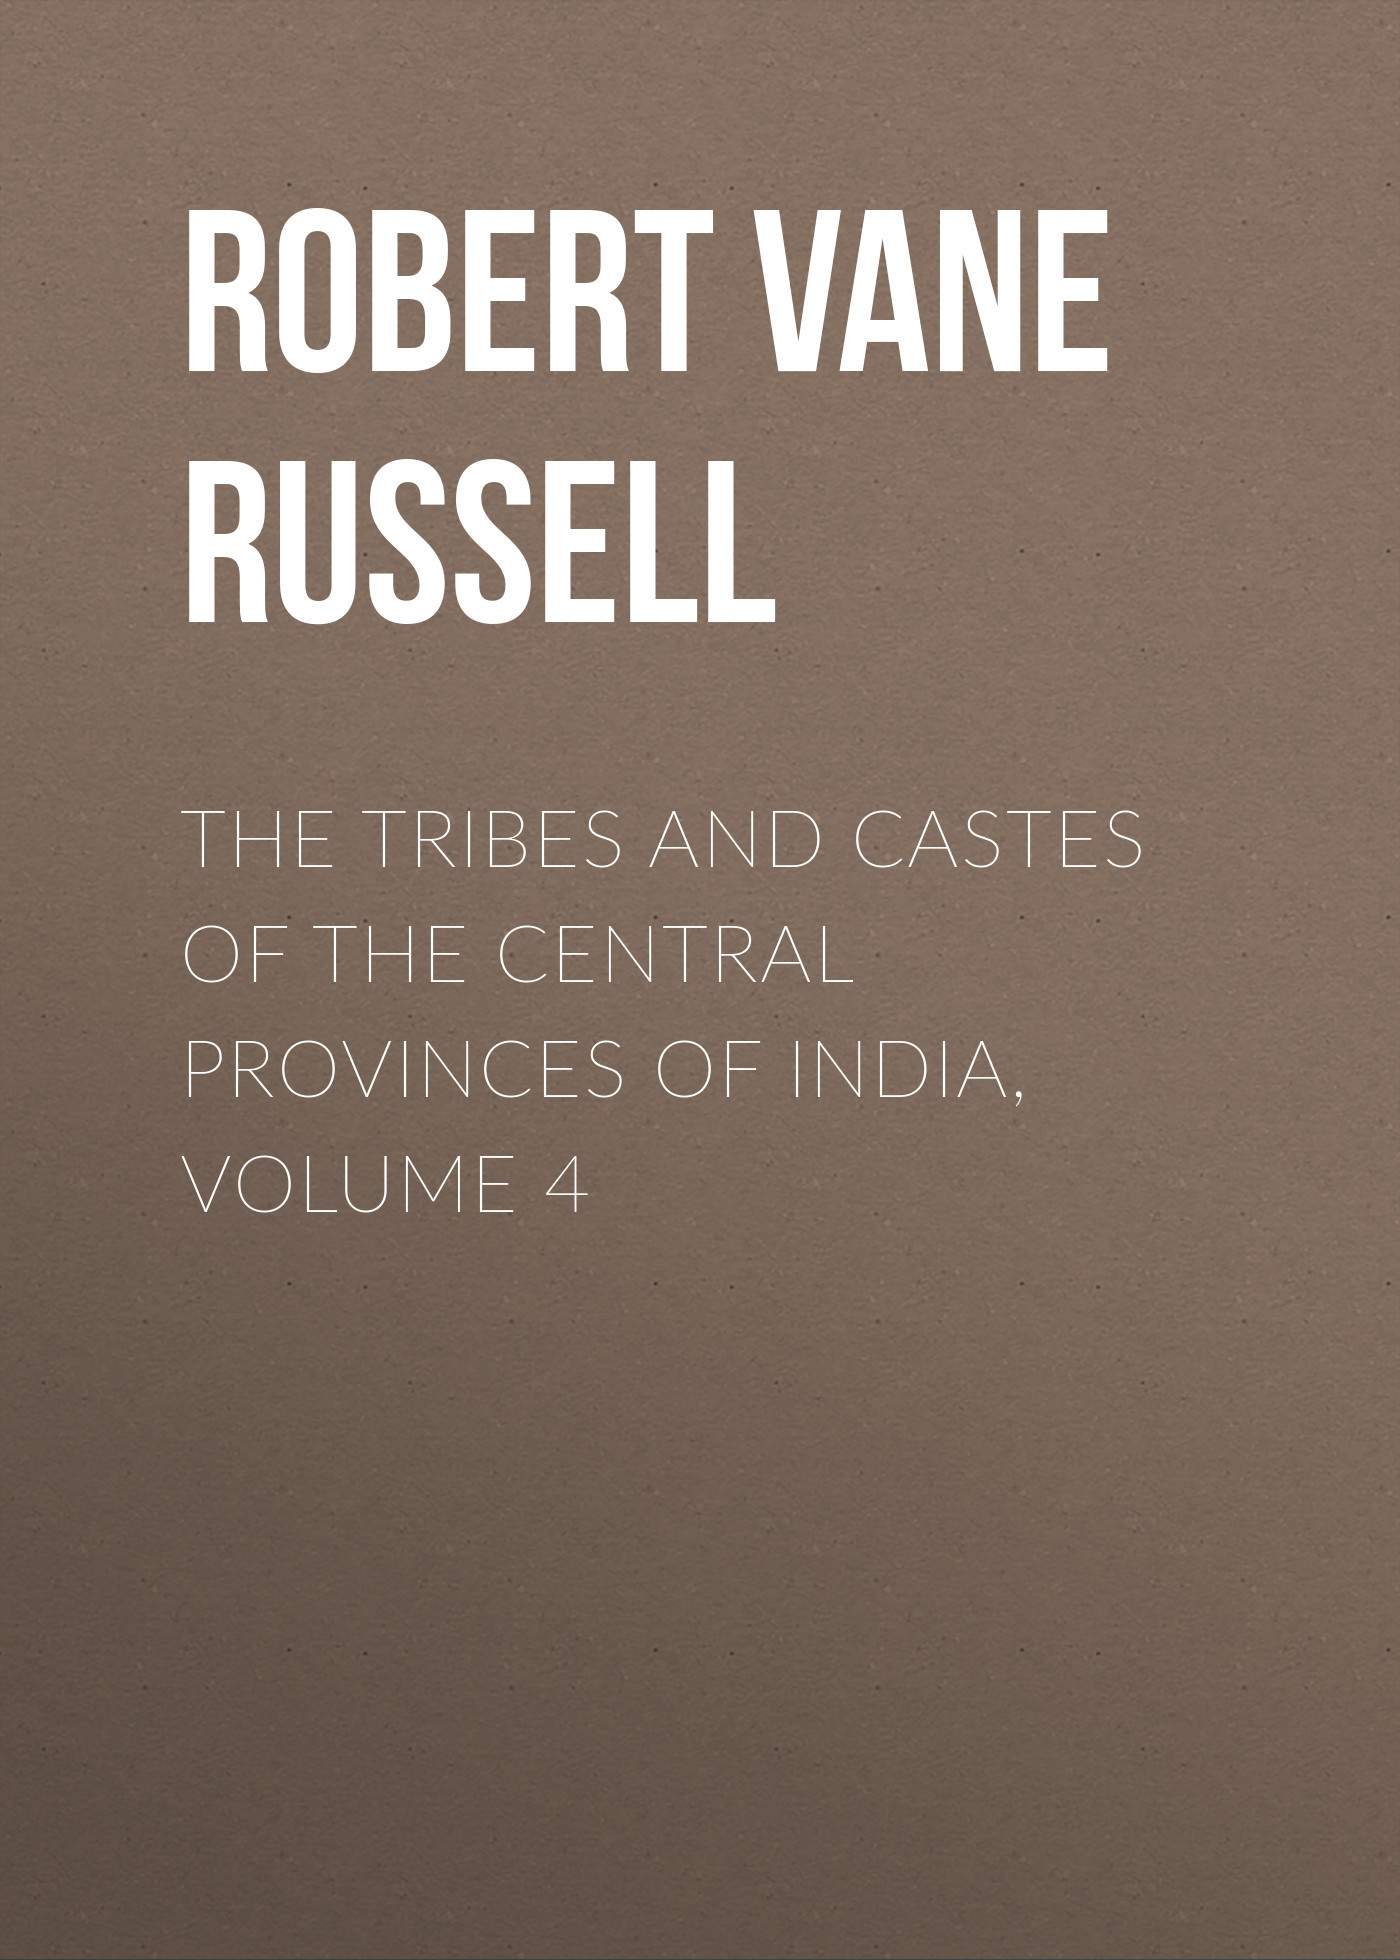 Robert Vane Russell The Tribes and Castes of the Central Provinces of India, Volume 4 mip0254 dip 7 page 3